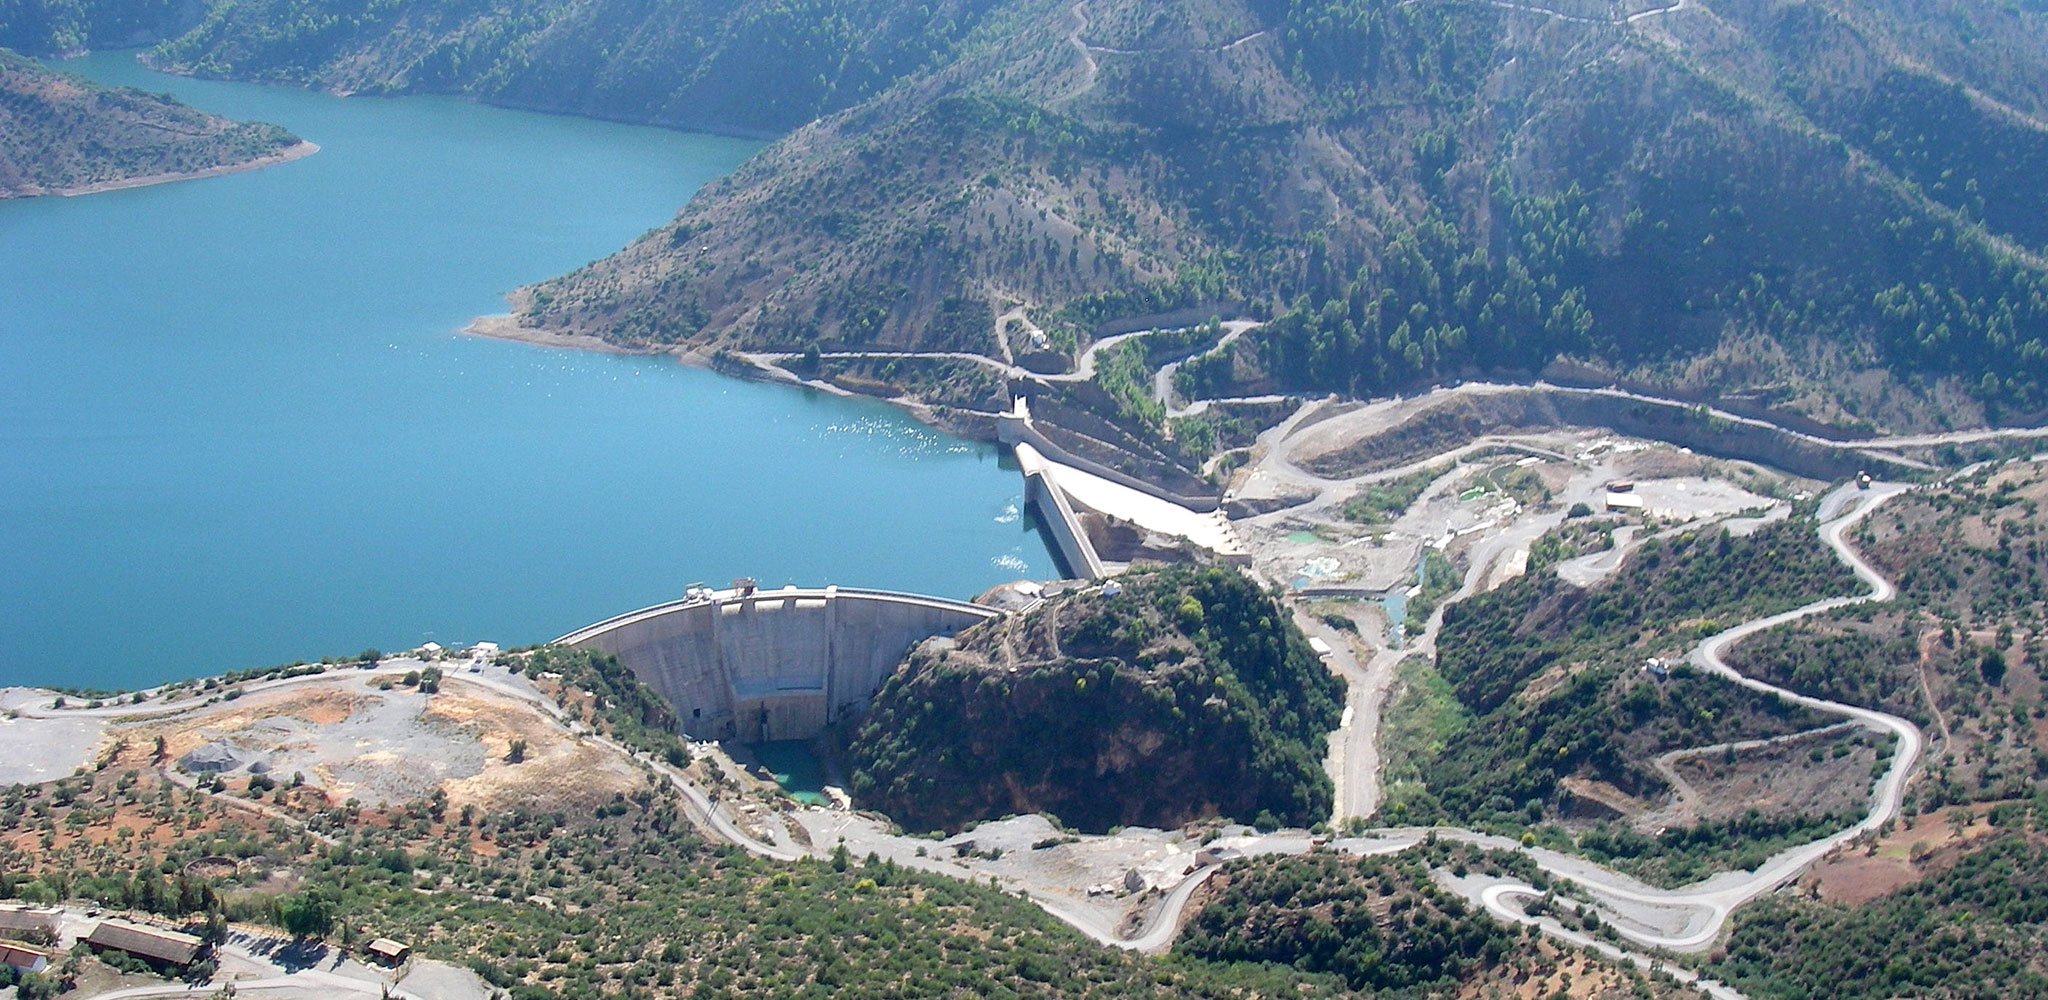 A dam - one aspect of water resources management